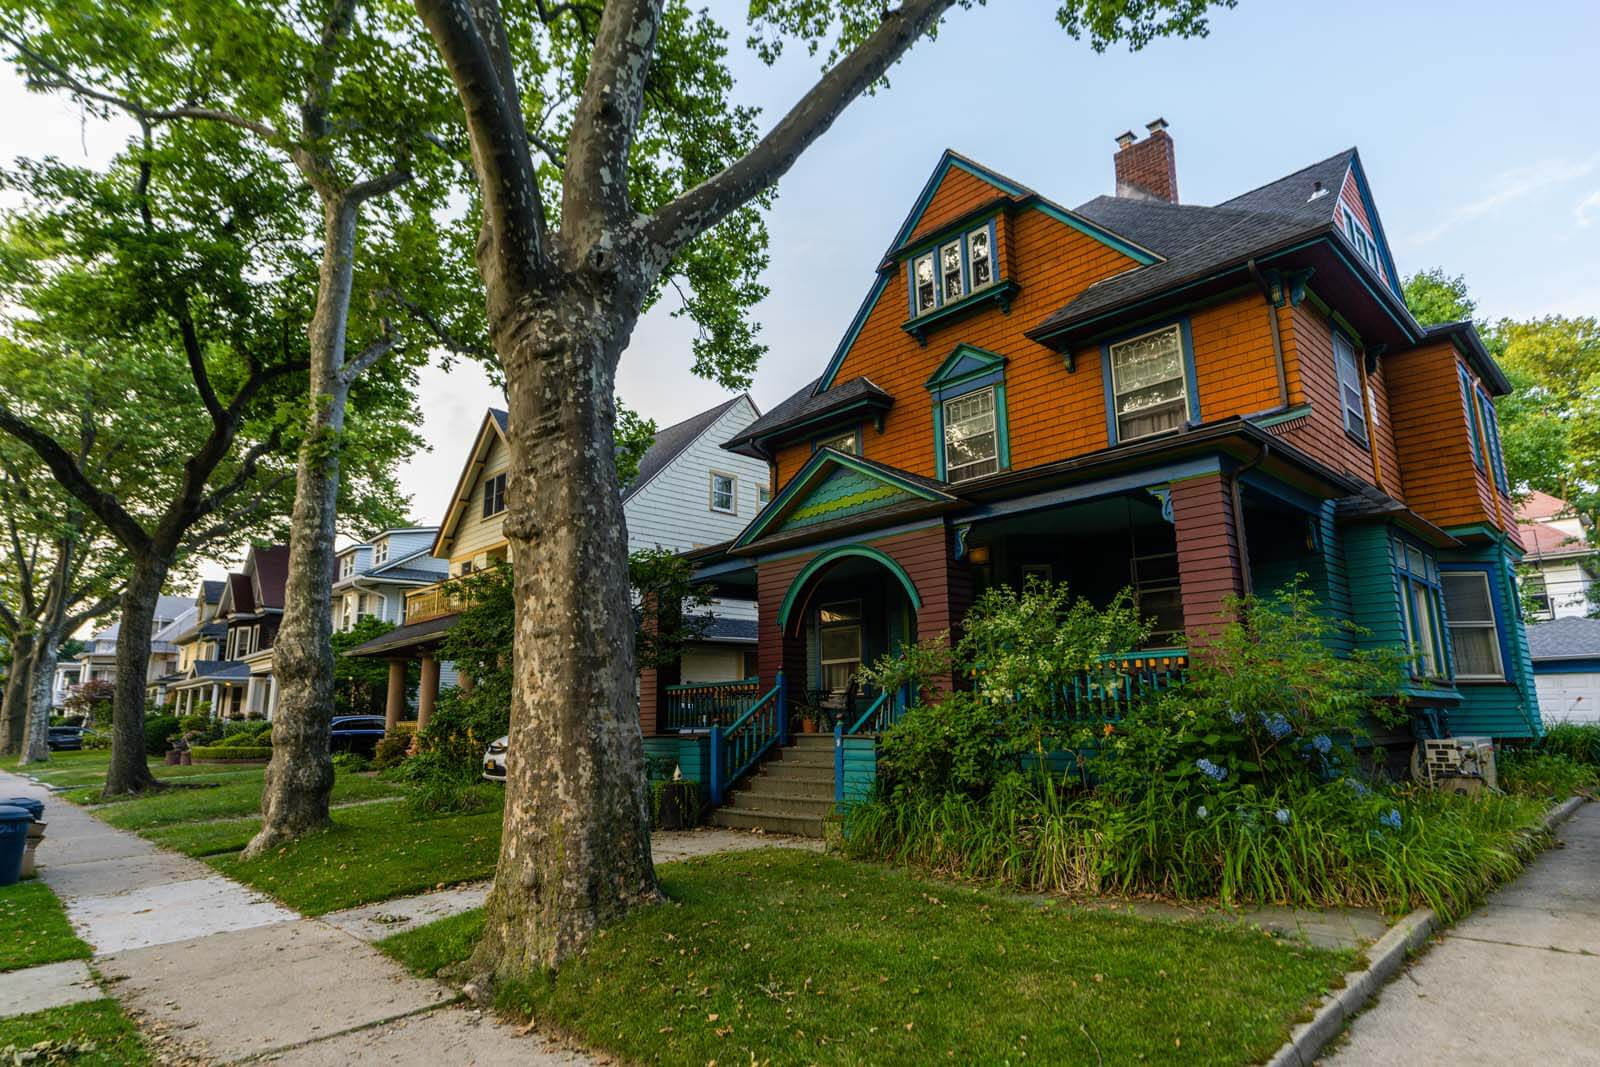 Gorgeous row of homes in Victorian Flatbush and Ditmas Park in Brooklyn